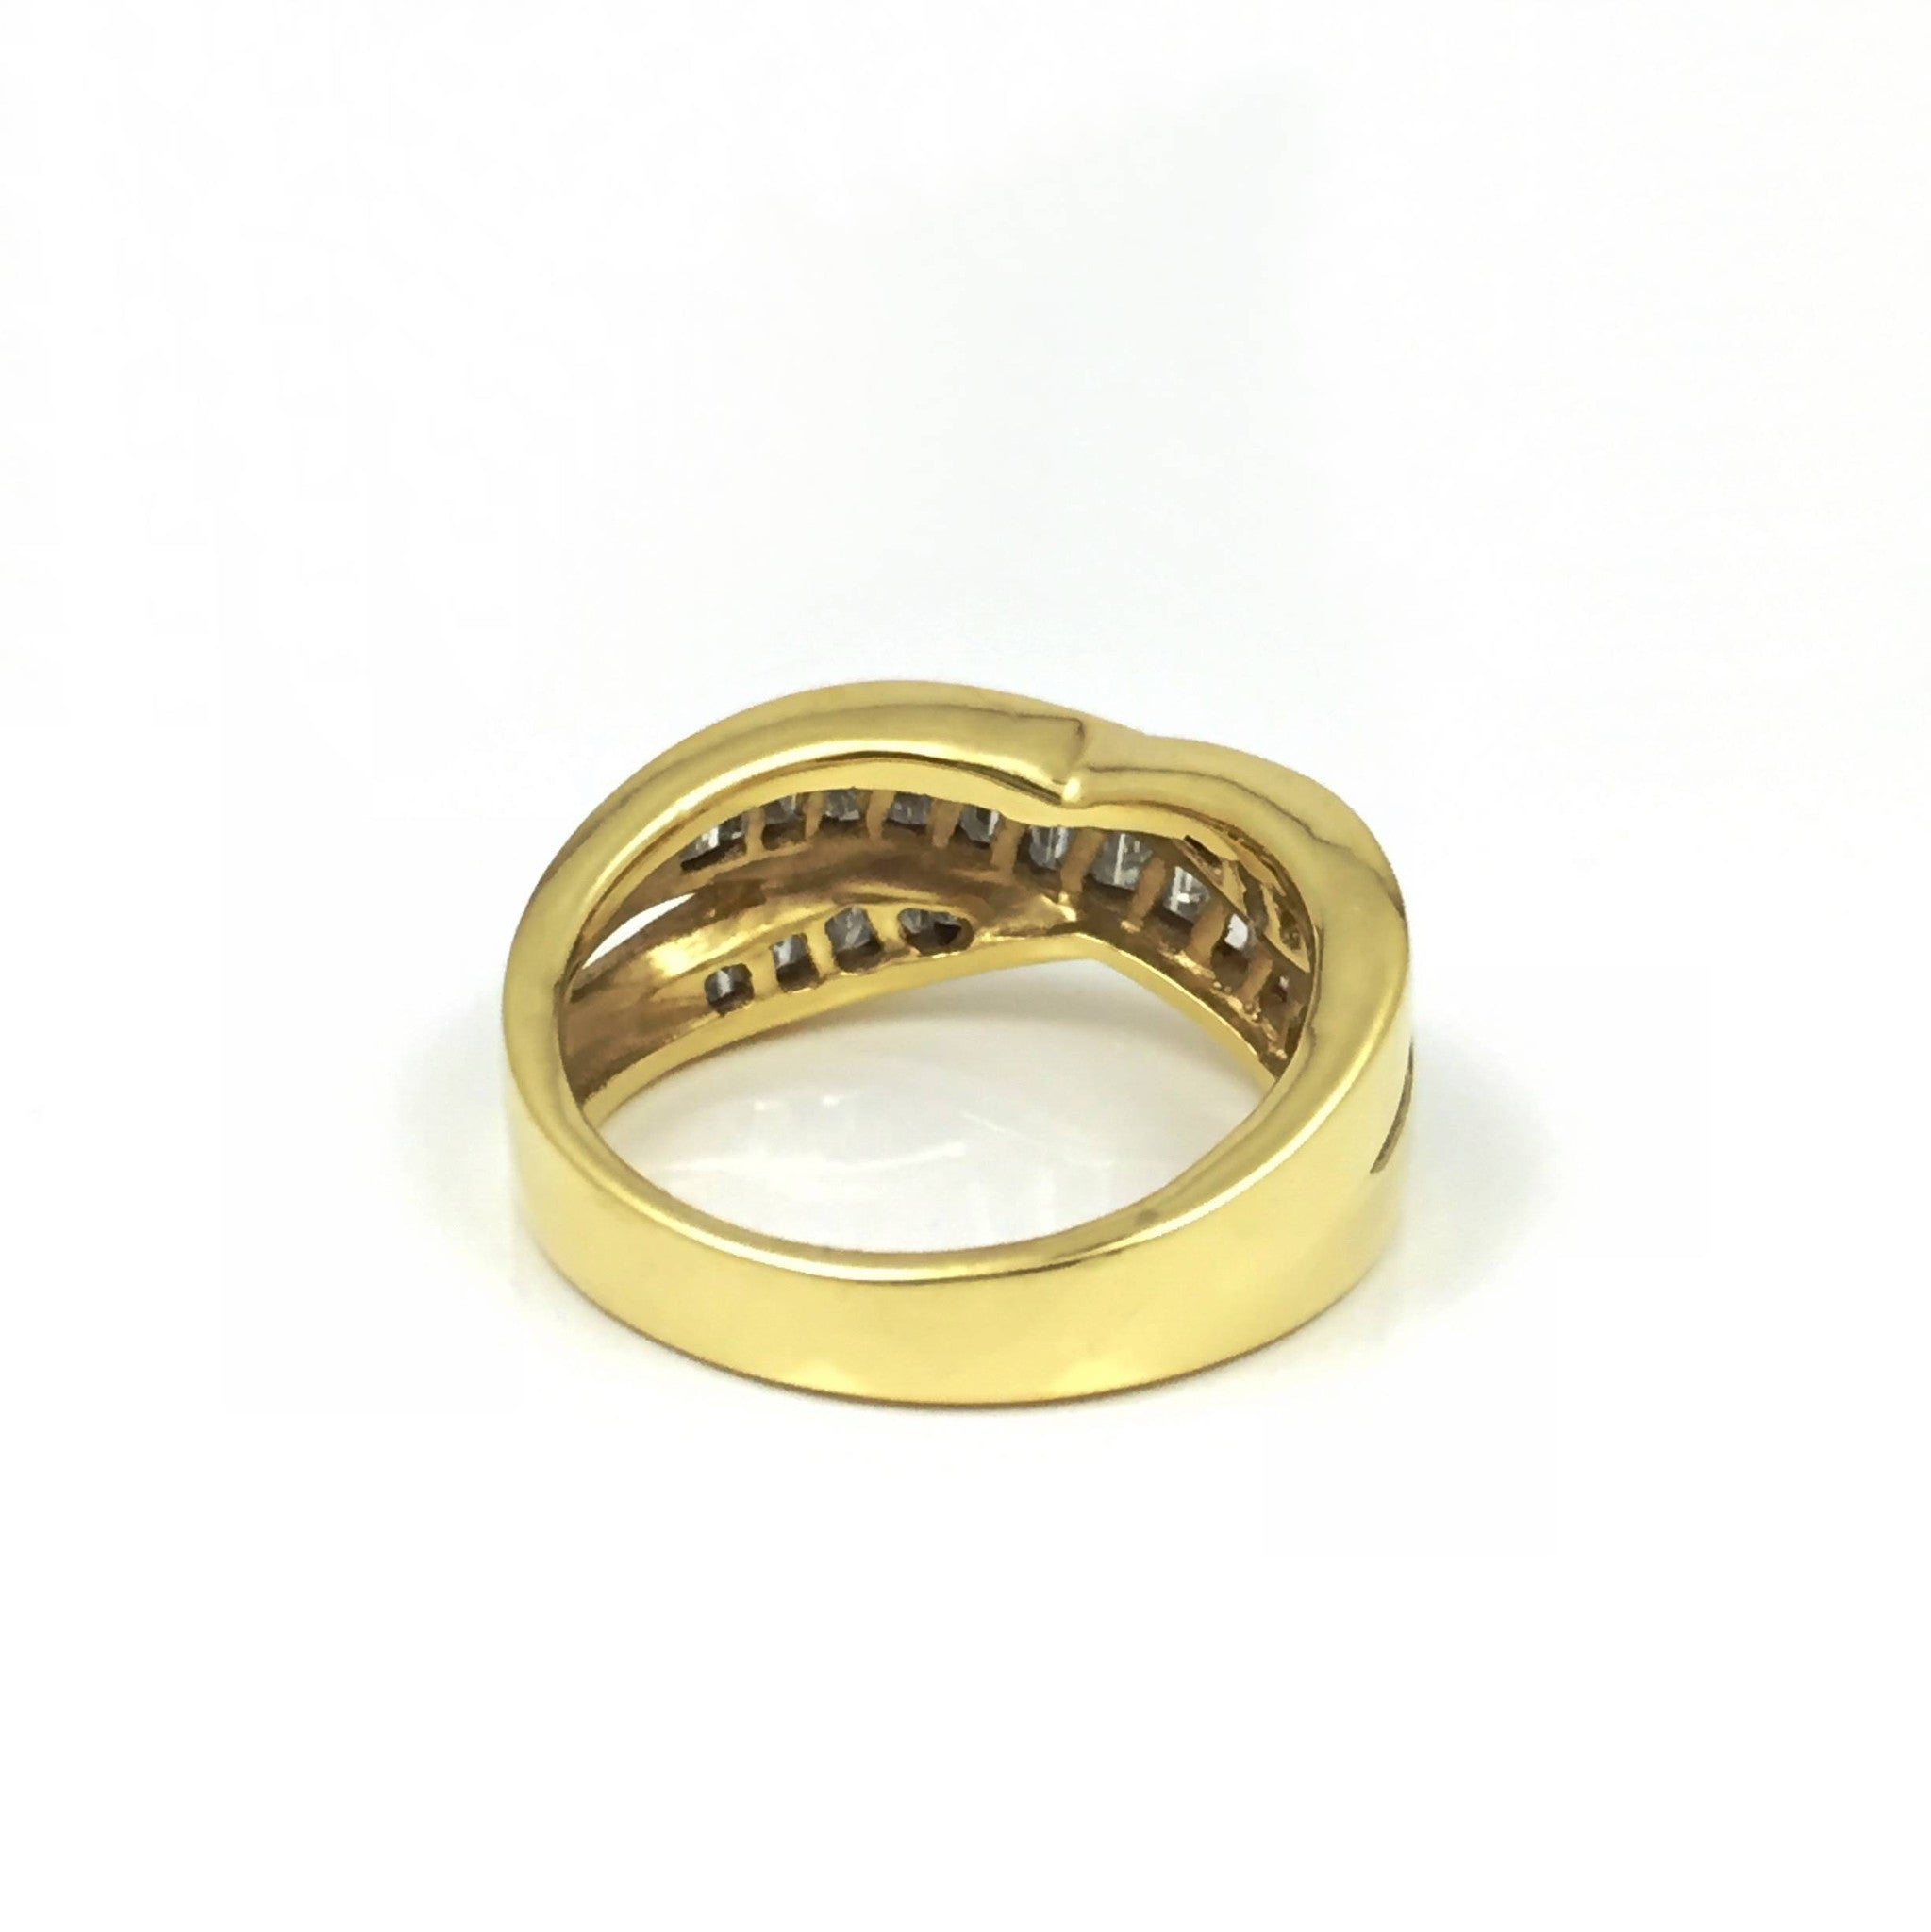 unique rings atdisability wedding mens titanium gold brilliant ideas of also walmart com yellow bands